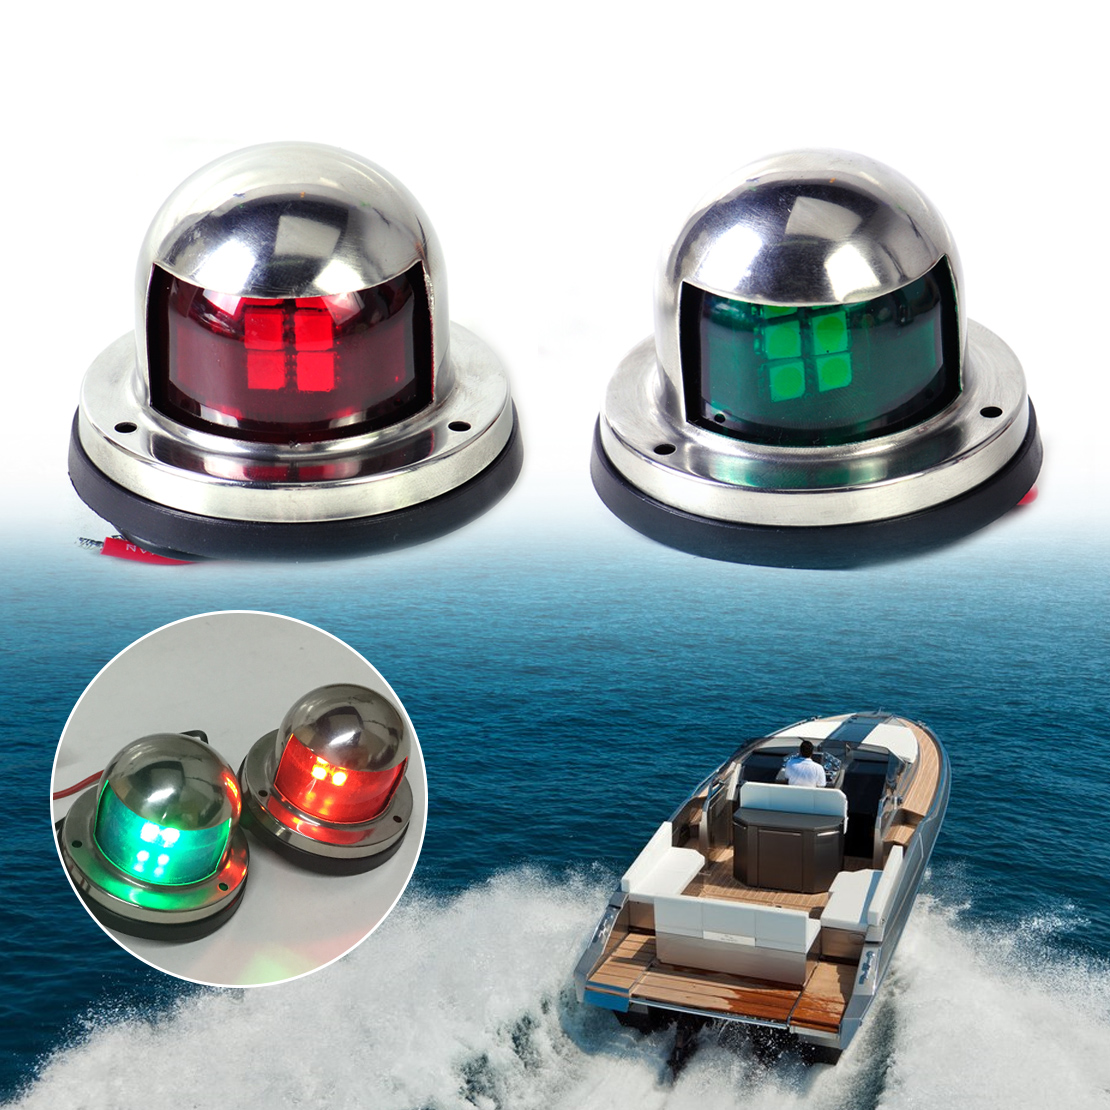 Beler Car Abs Led Light Electronic Navigation Compass Fit For Marine Boat Sail Ship Vehicle Car Confirming Navigation Directions Pure White And Translucent Boat Parts & Accessories Automobiles & Motorcycles